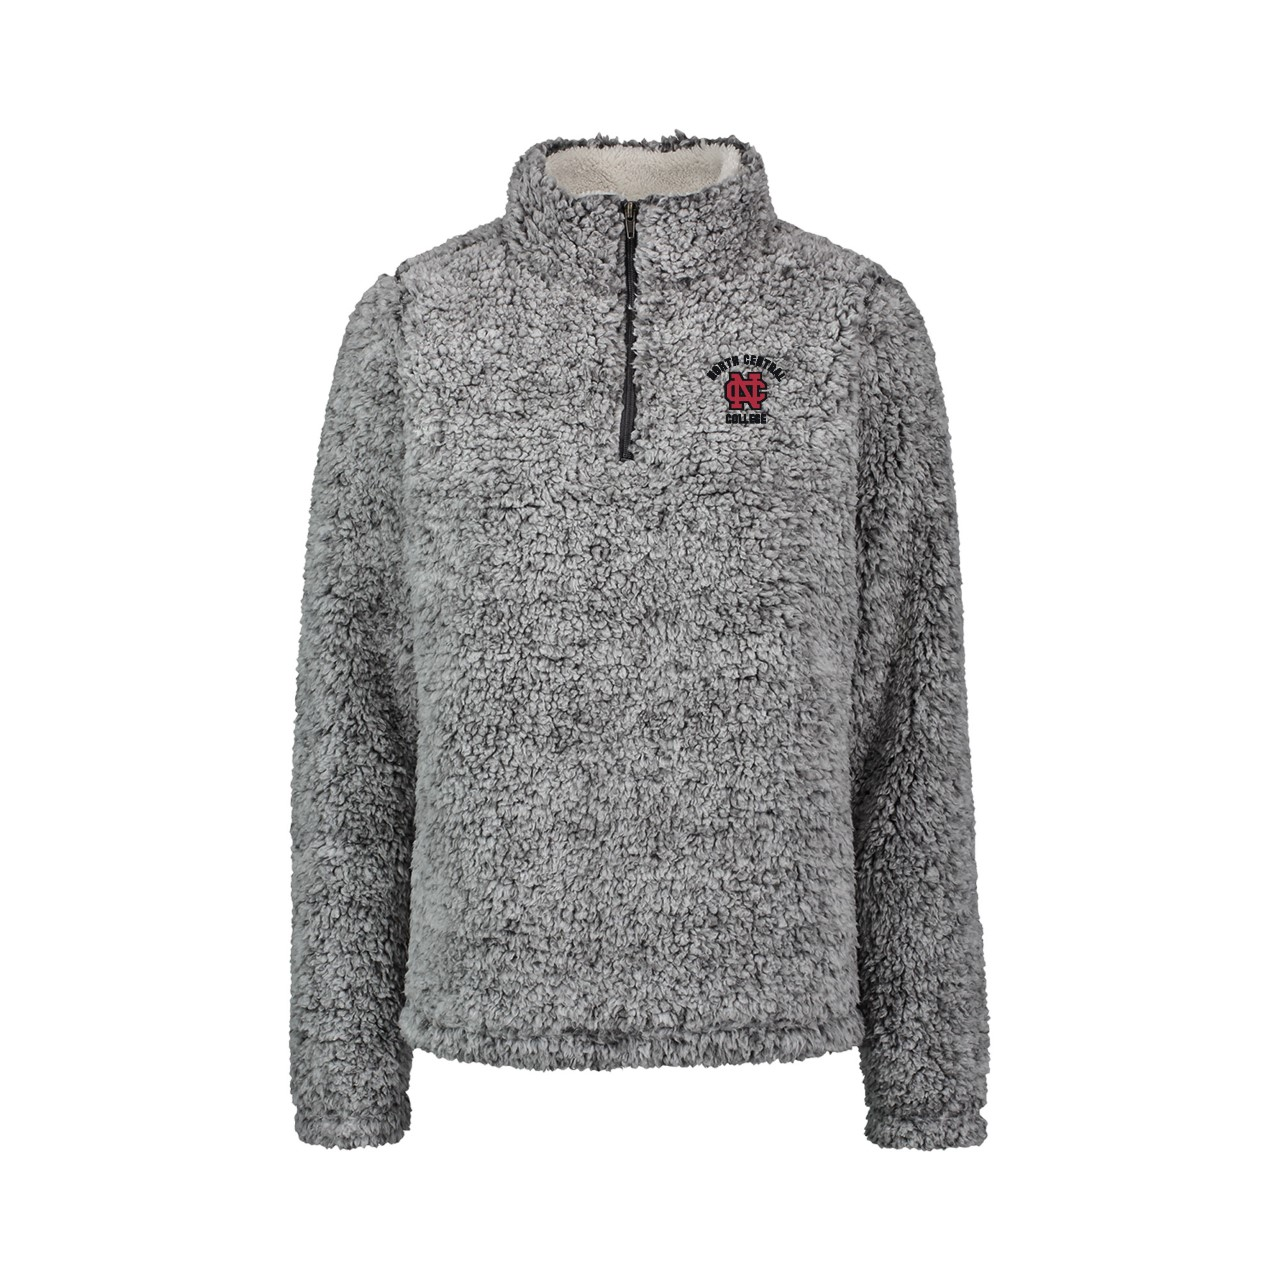 Alternative Image for the North Central College Addison 1/4 Zip Sherpa by MV Sport product